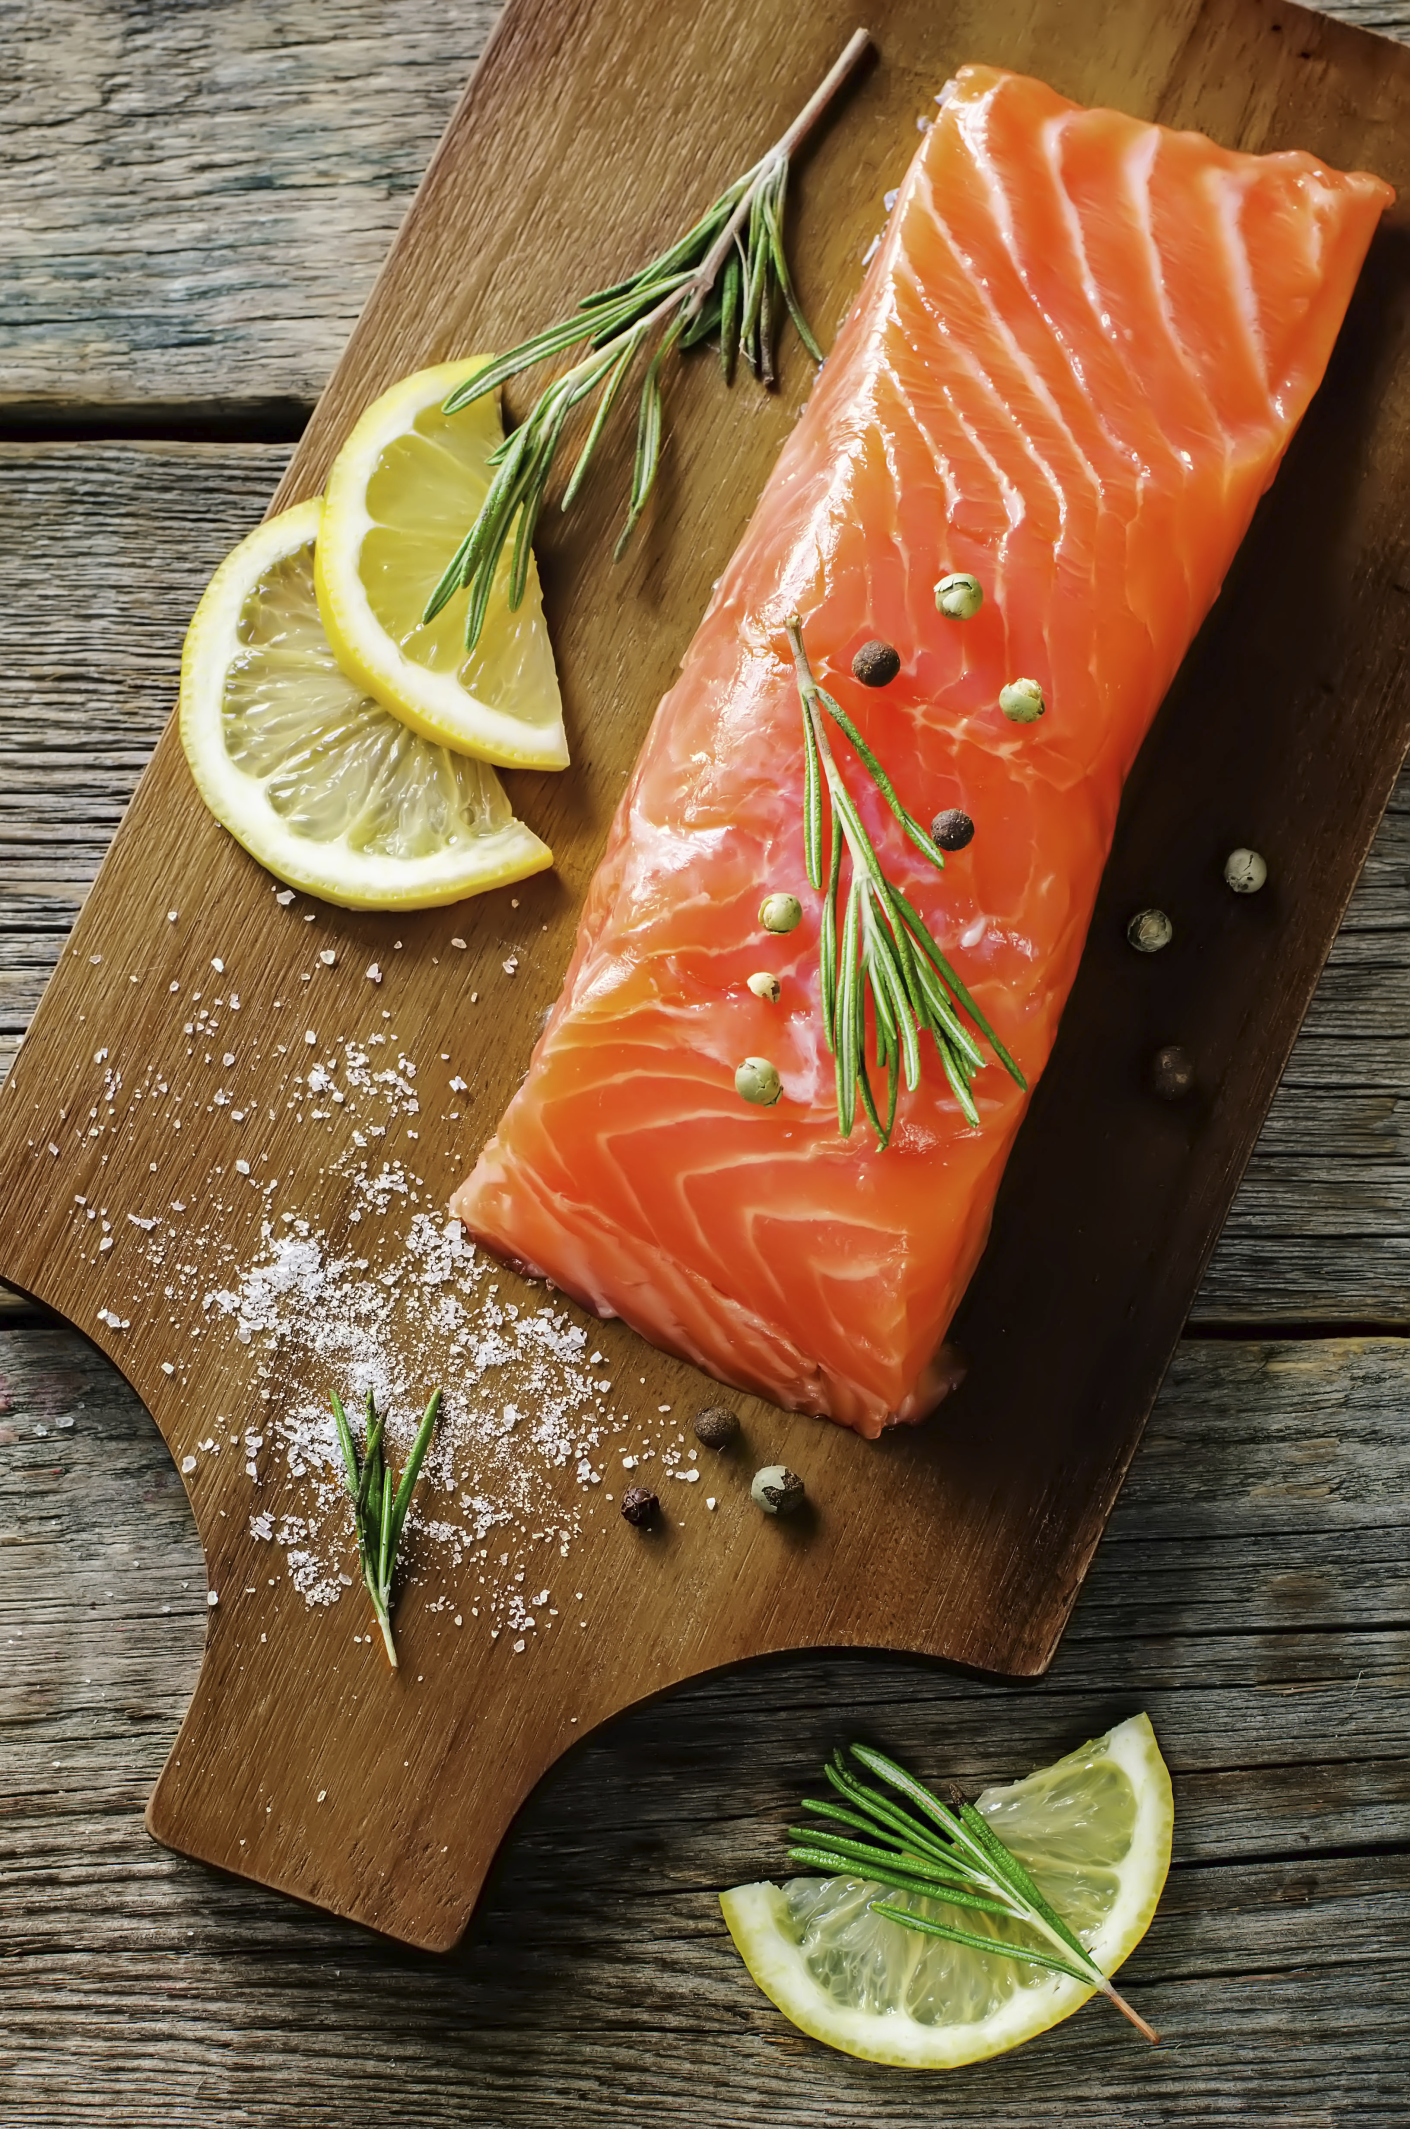 How to cook rolled stuffed salmon fillets livestrong ccuart Gallery